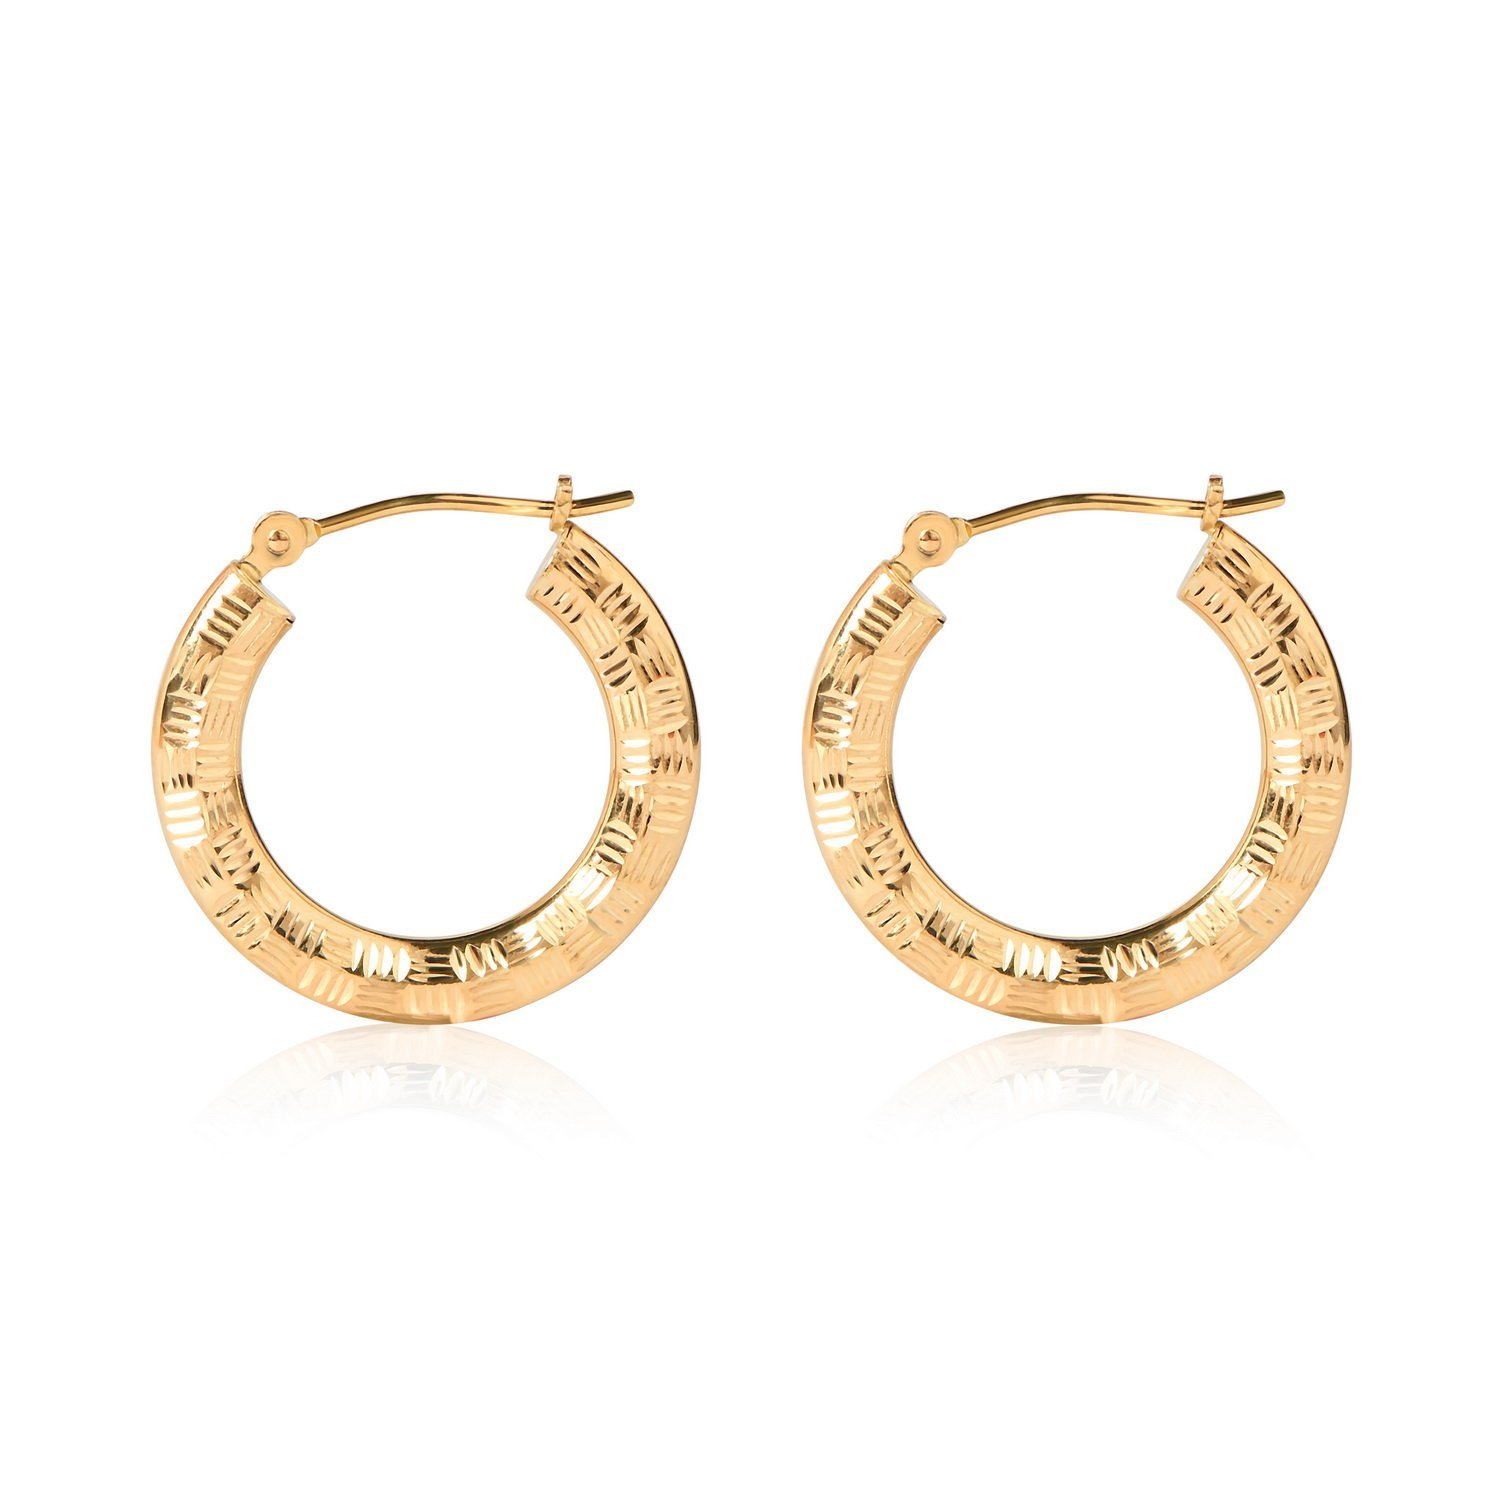 Olivias Collection 14kt Yellow Gold Diamond Cut Hoop Earrings 20-25mm